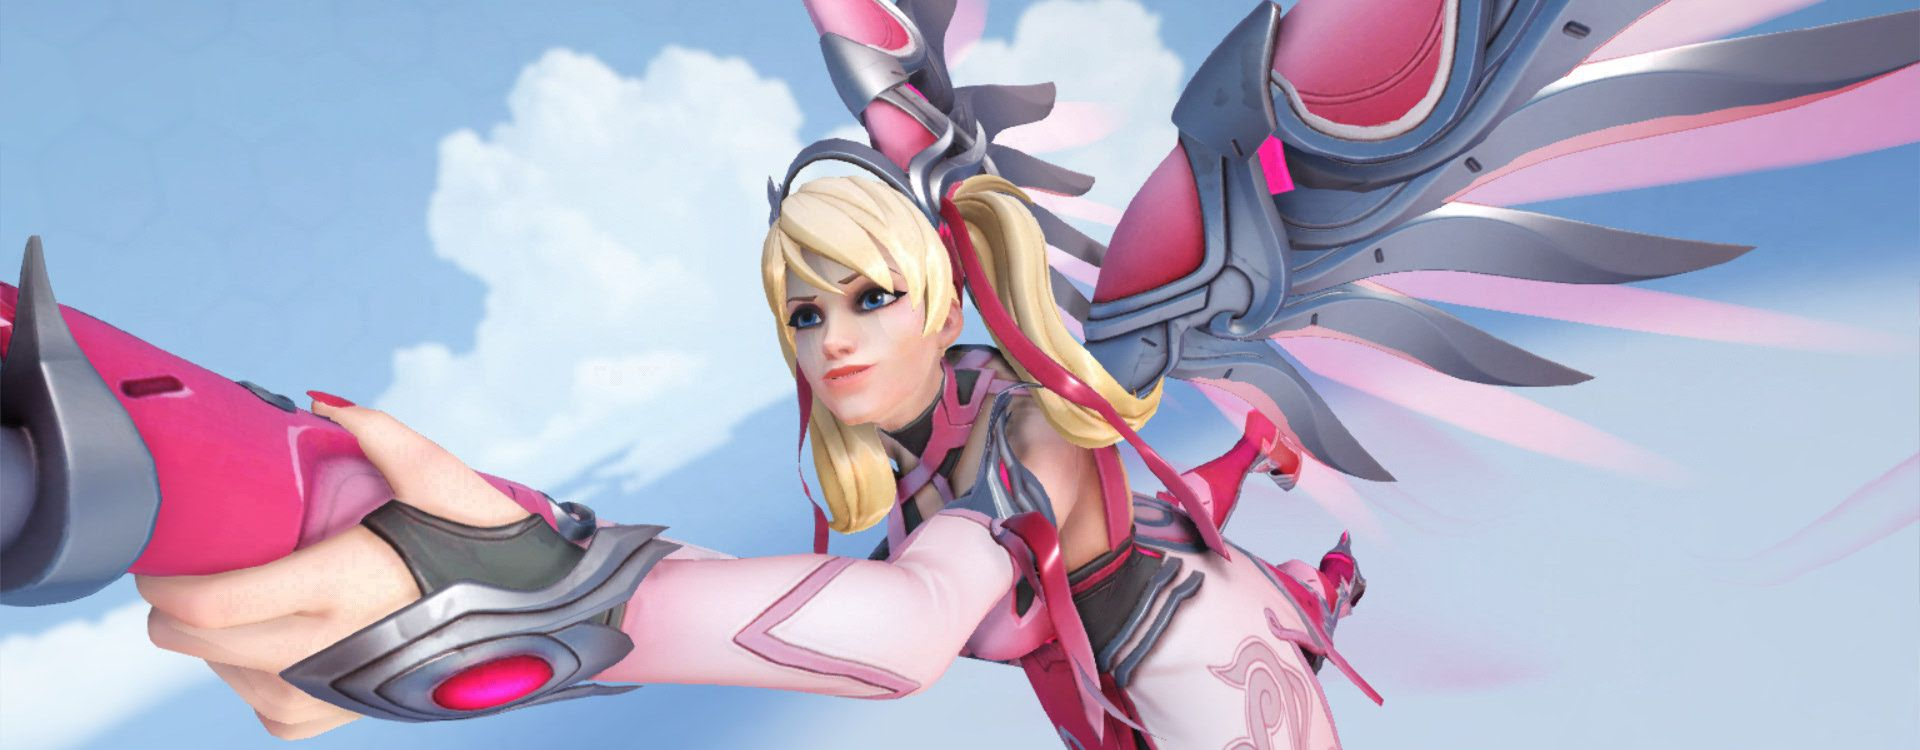 Overwatch Mercy Brustkrebs pink highlight intro titel